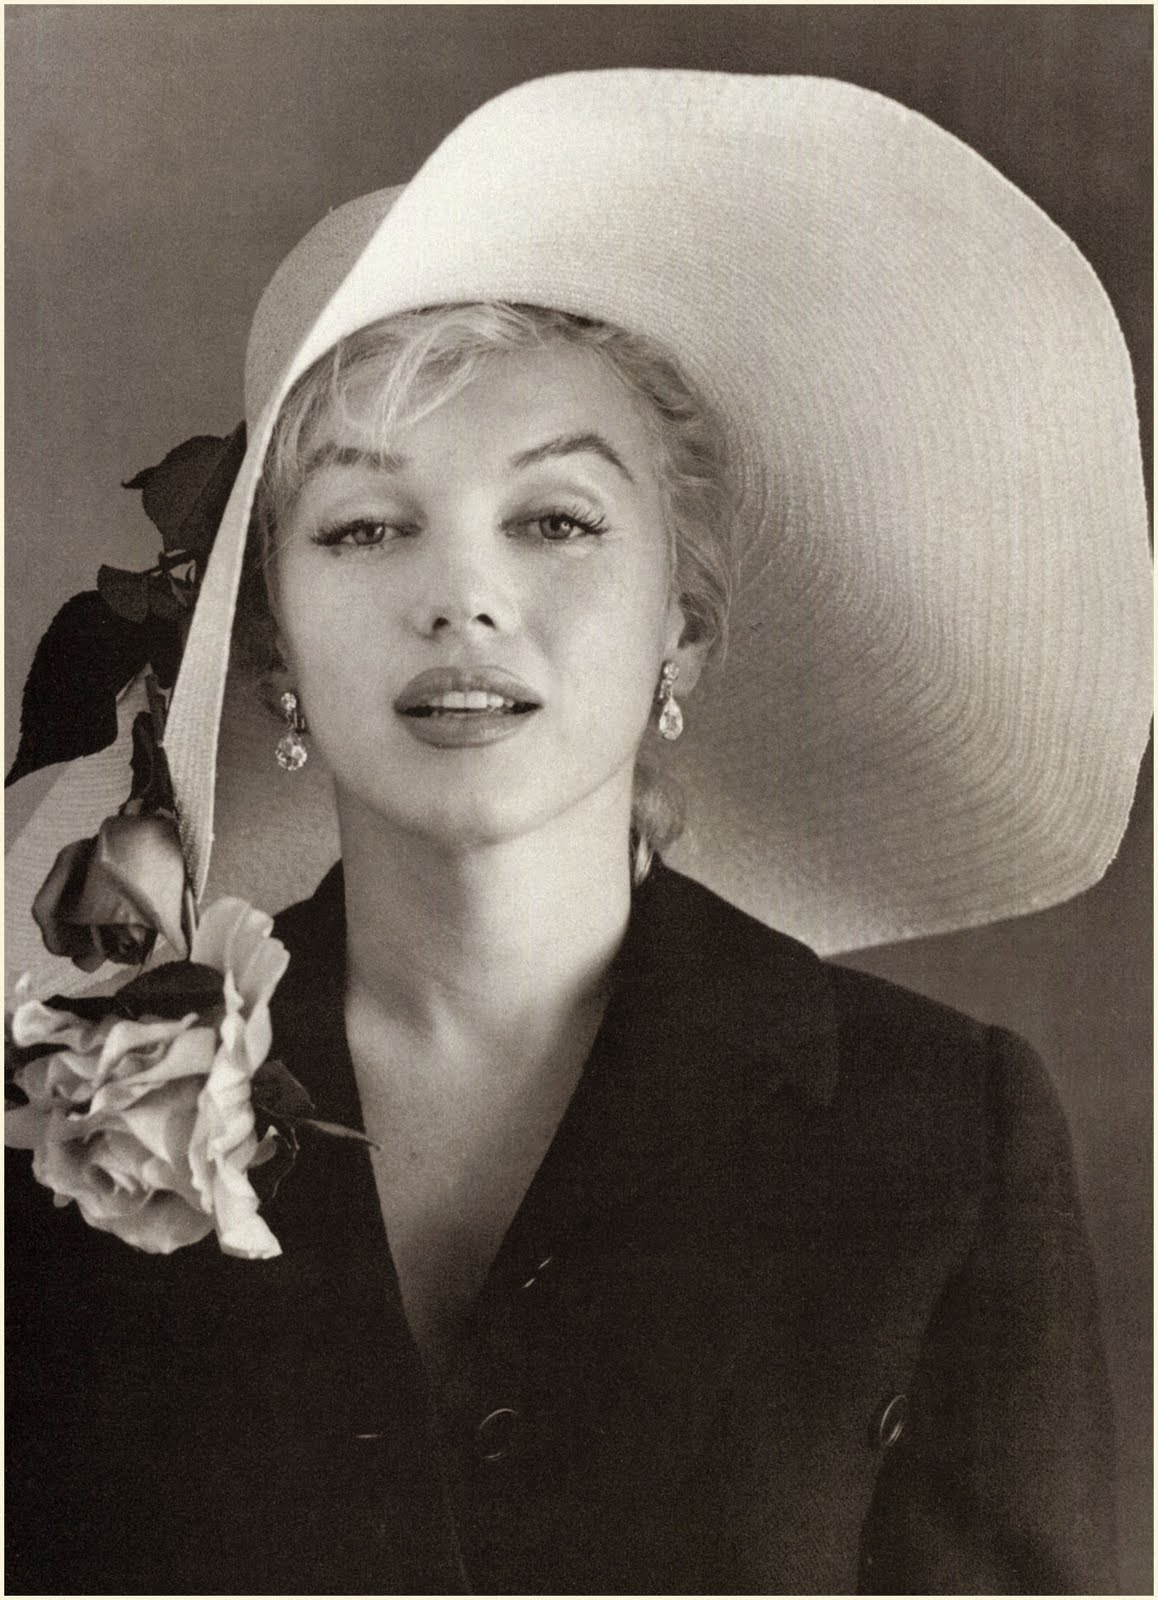 Marilyn Monroe Living Room Decor: The Pictorial Arts: The Marilyn Mystery